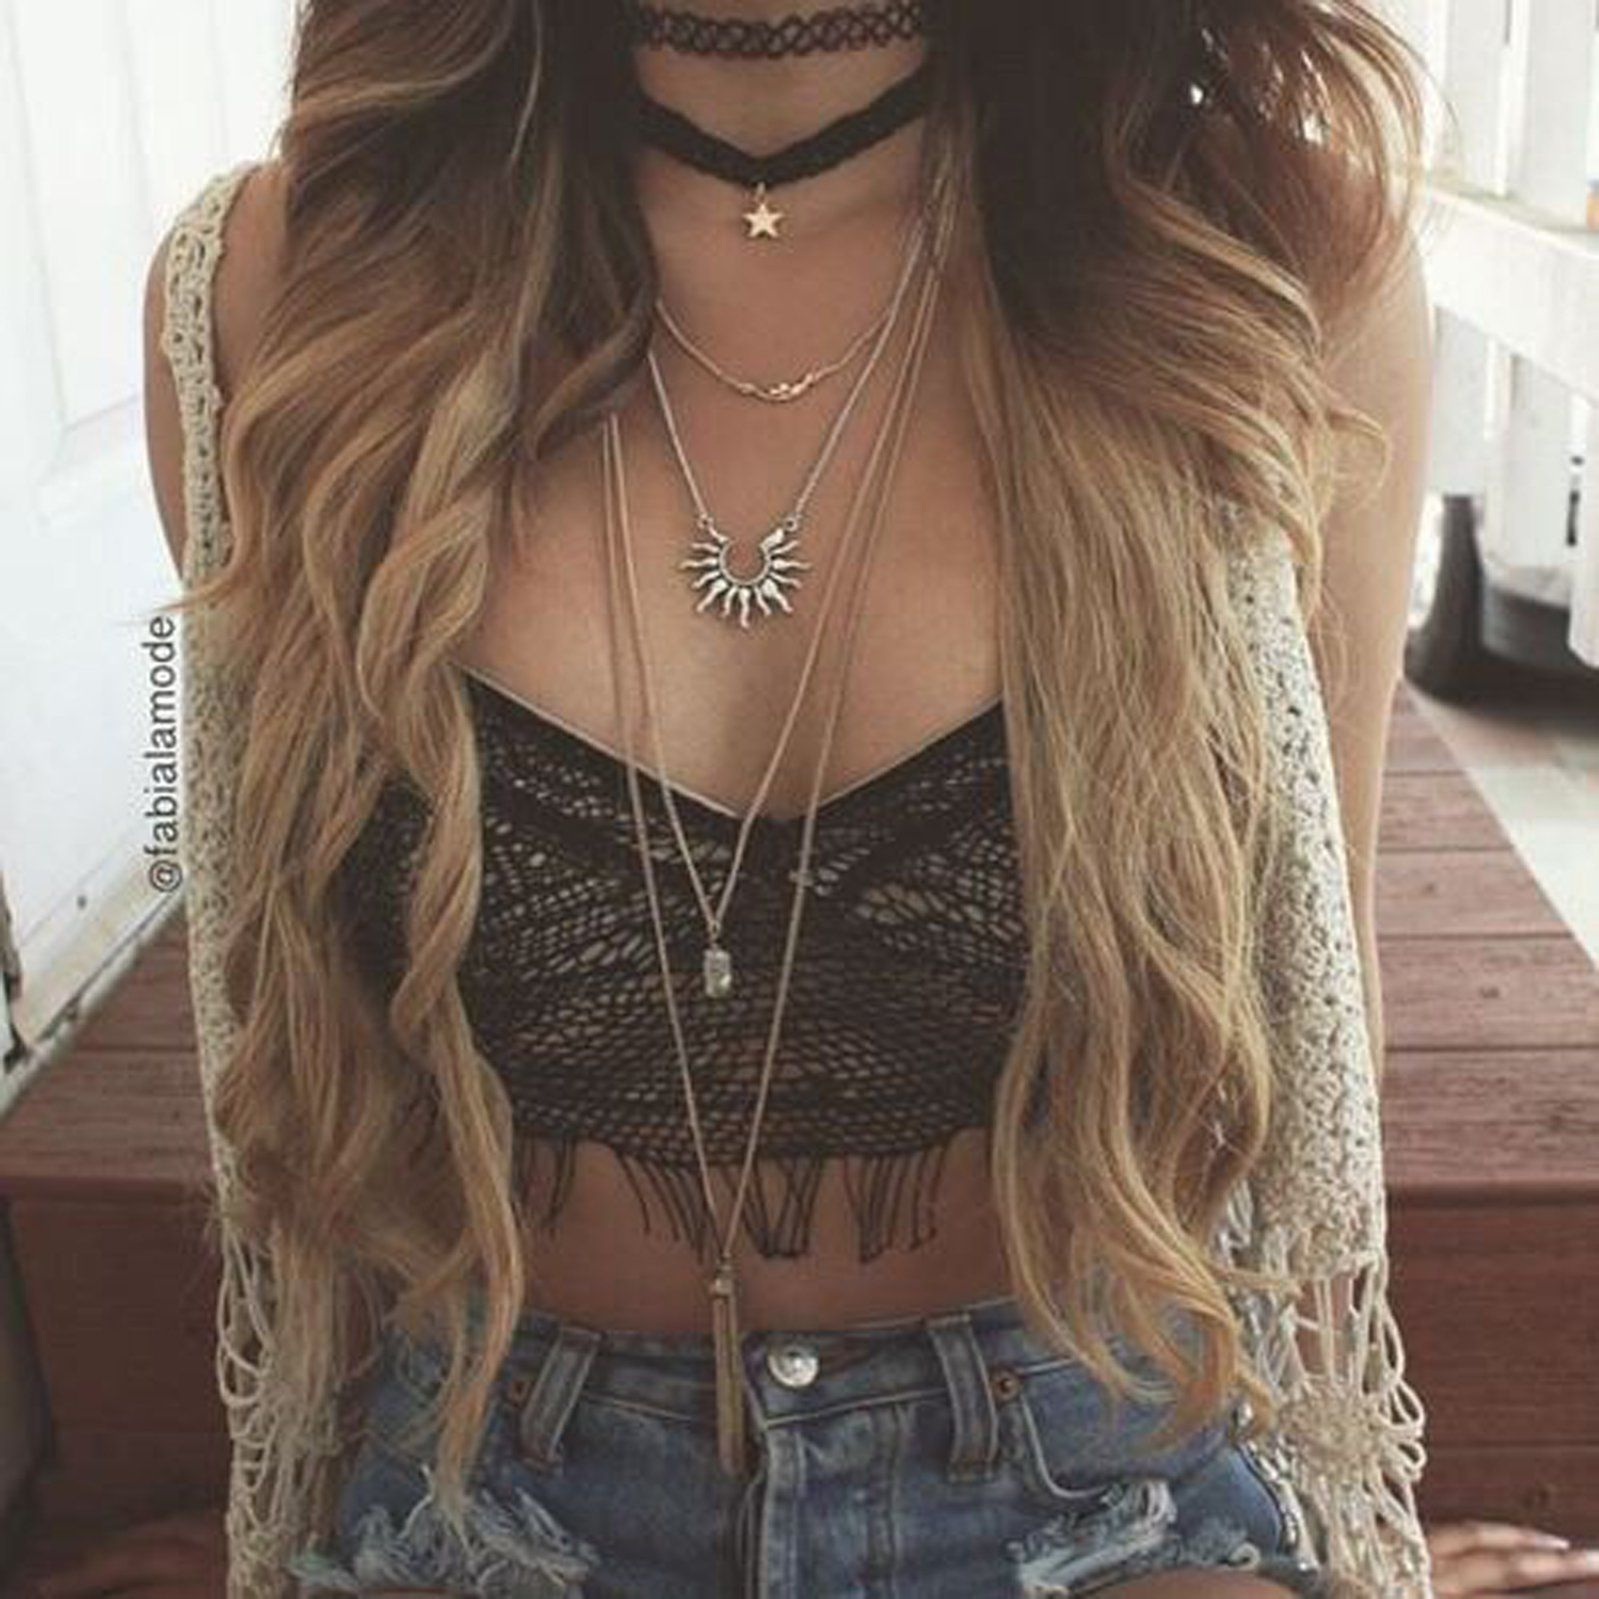 To acquire Hair boho tumblr photo picture trends